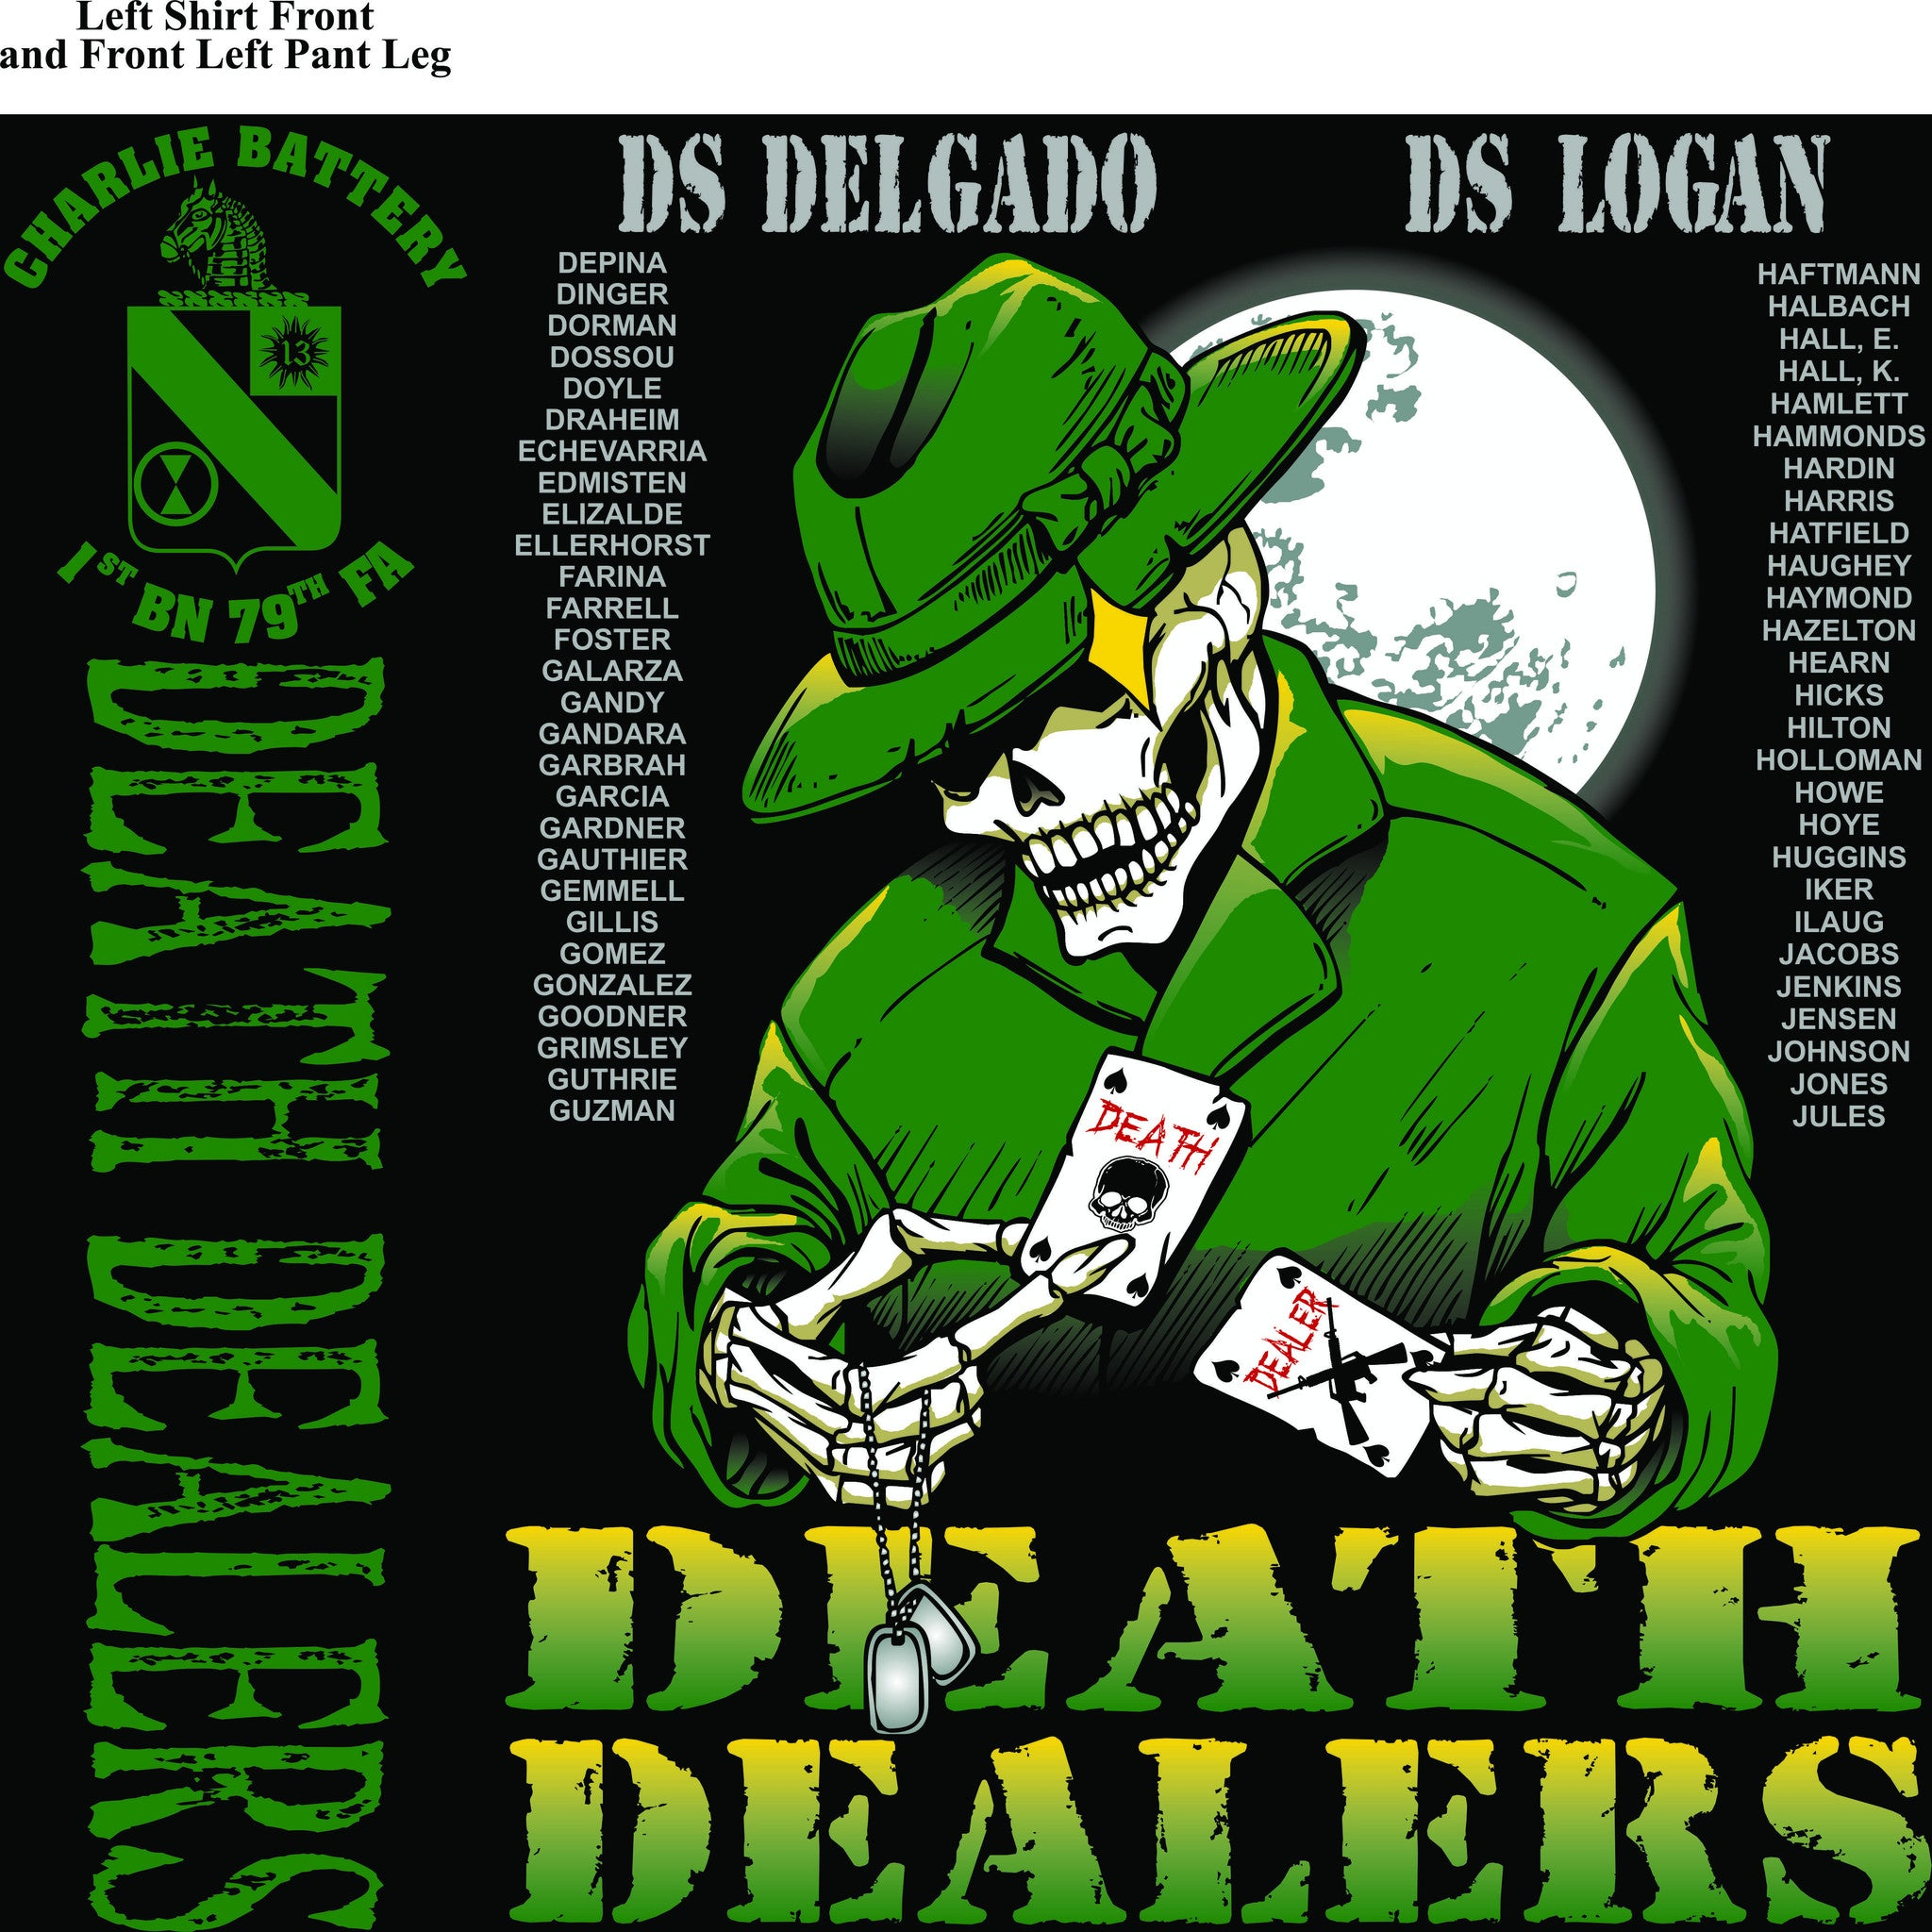 Platoon Shirts CHARLIE 1st 79th DEATH DEALERS JULY 2015